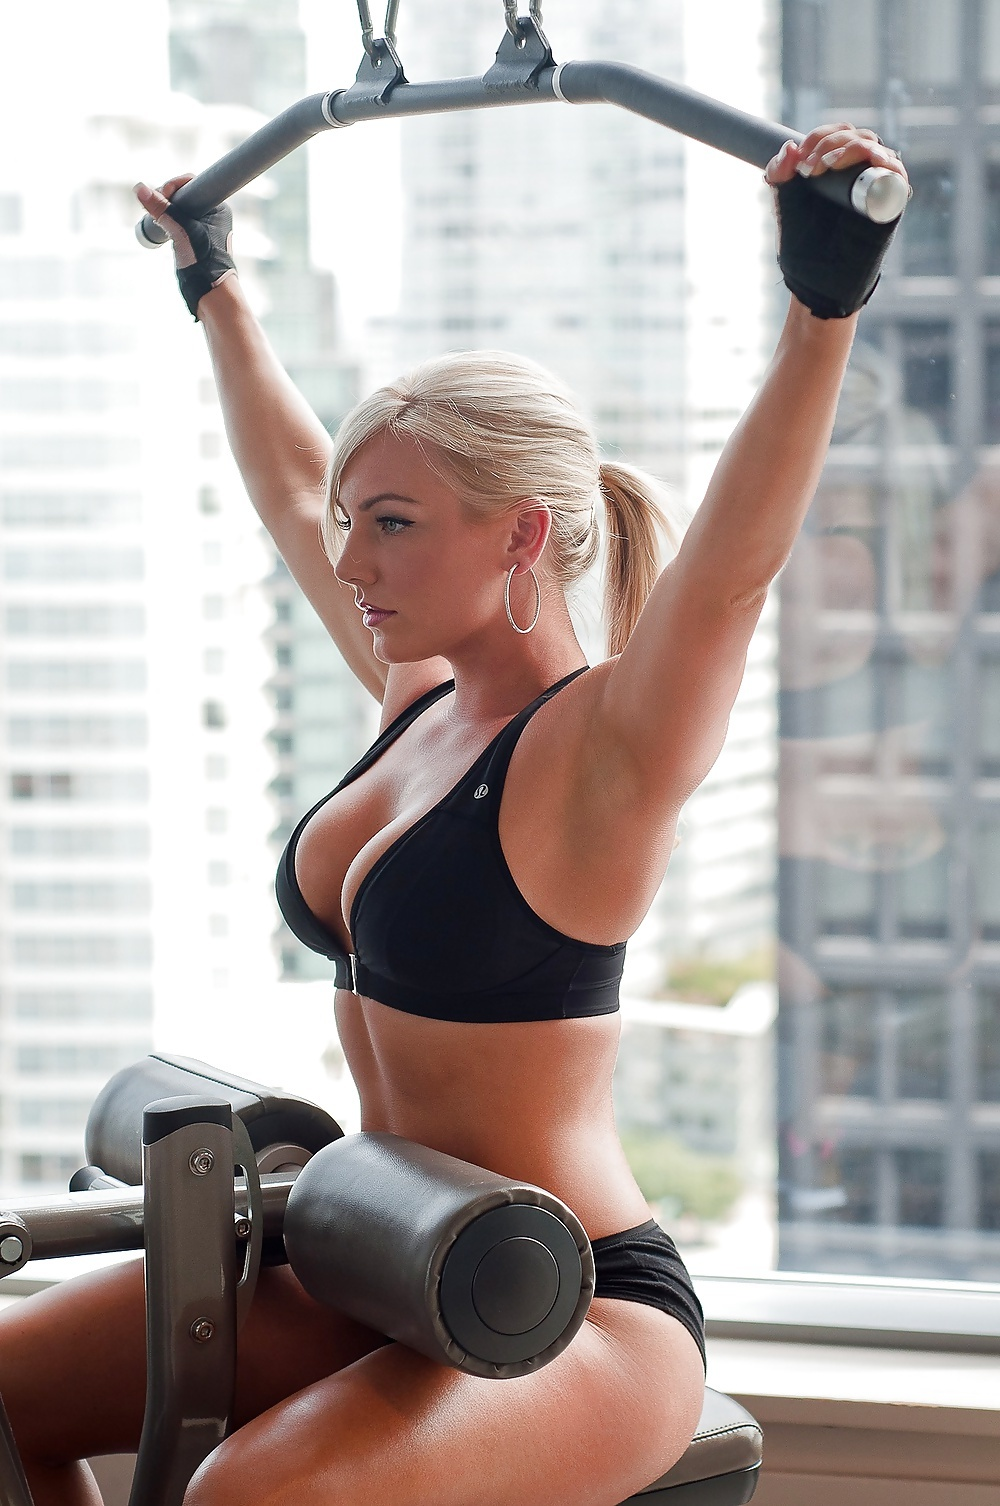 Hot girls working out naked